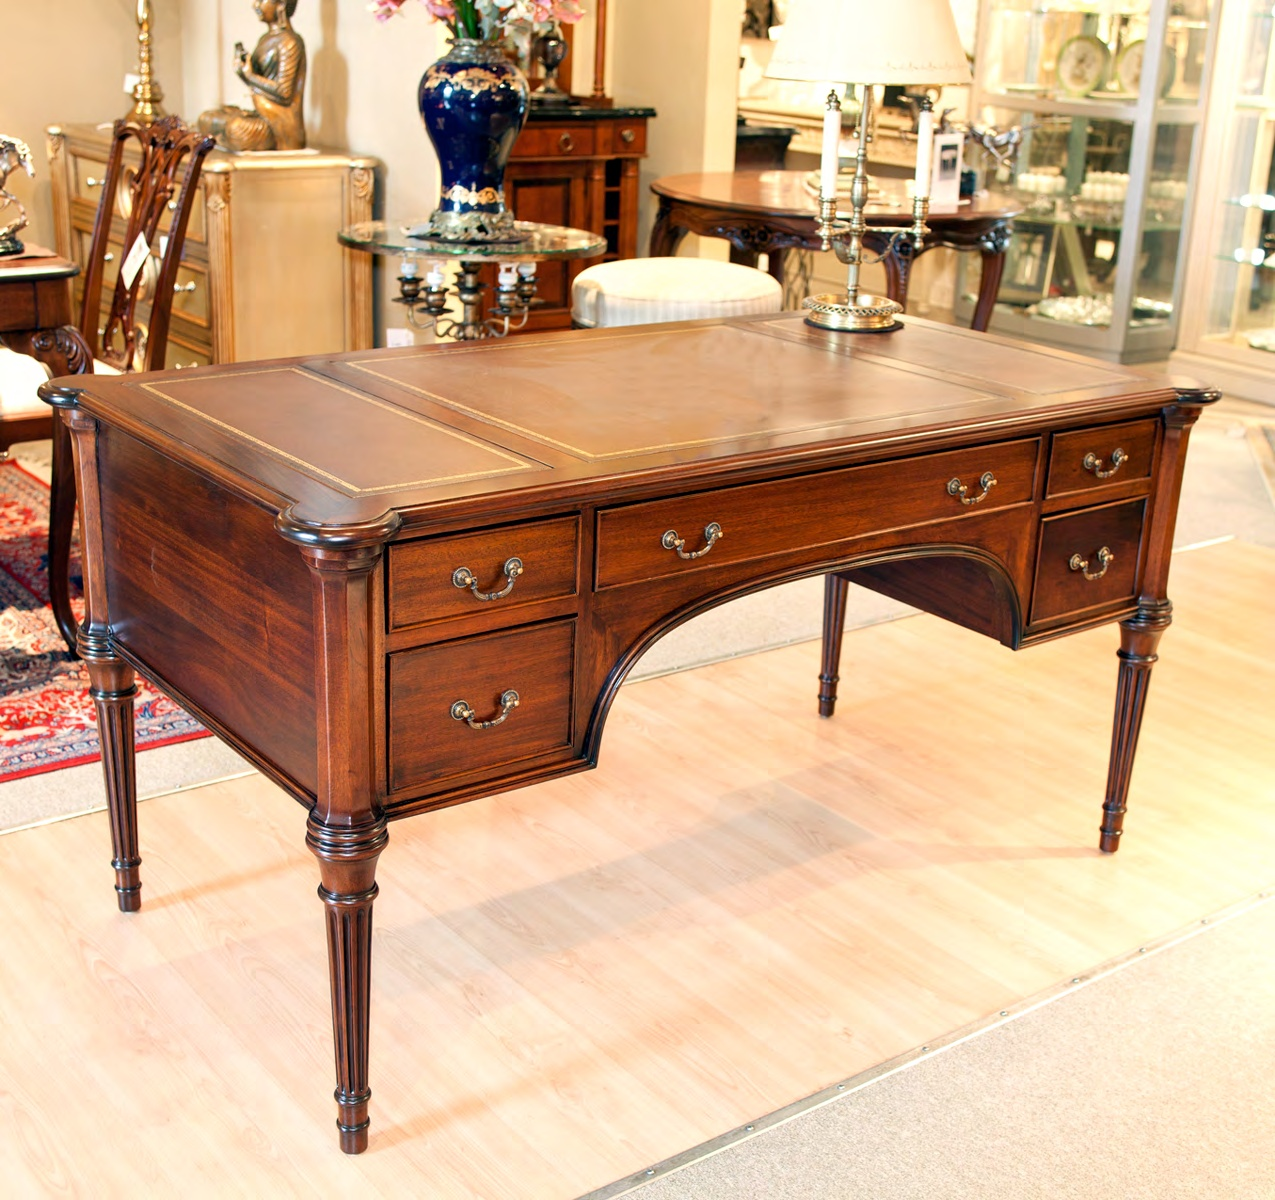 TAOD7022 - Sheraton Period Writing Desk